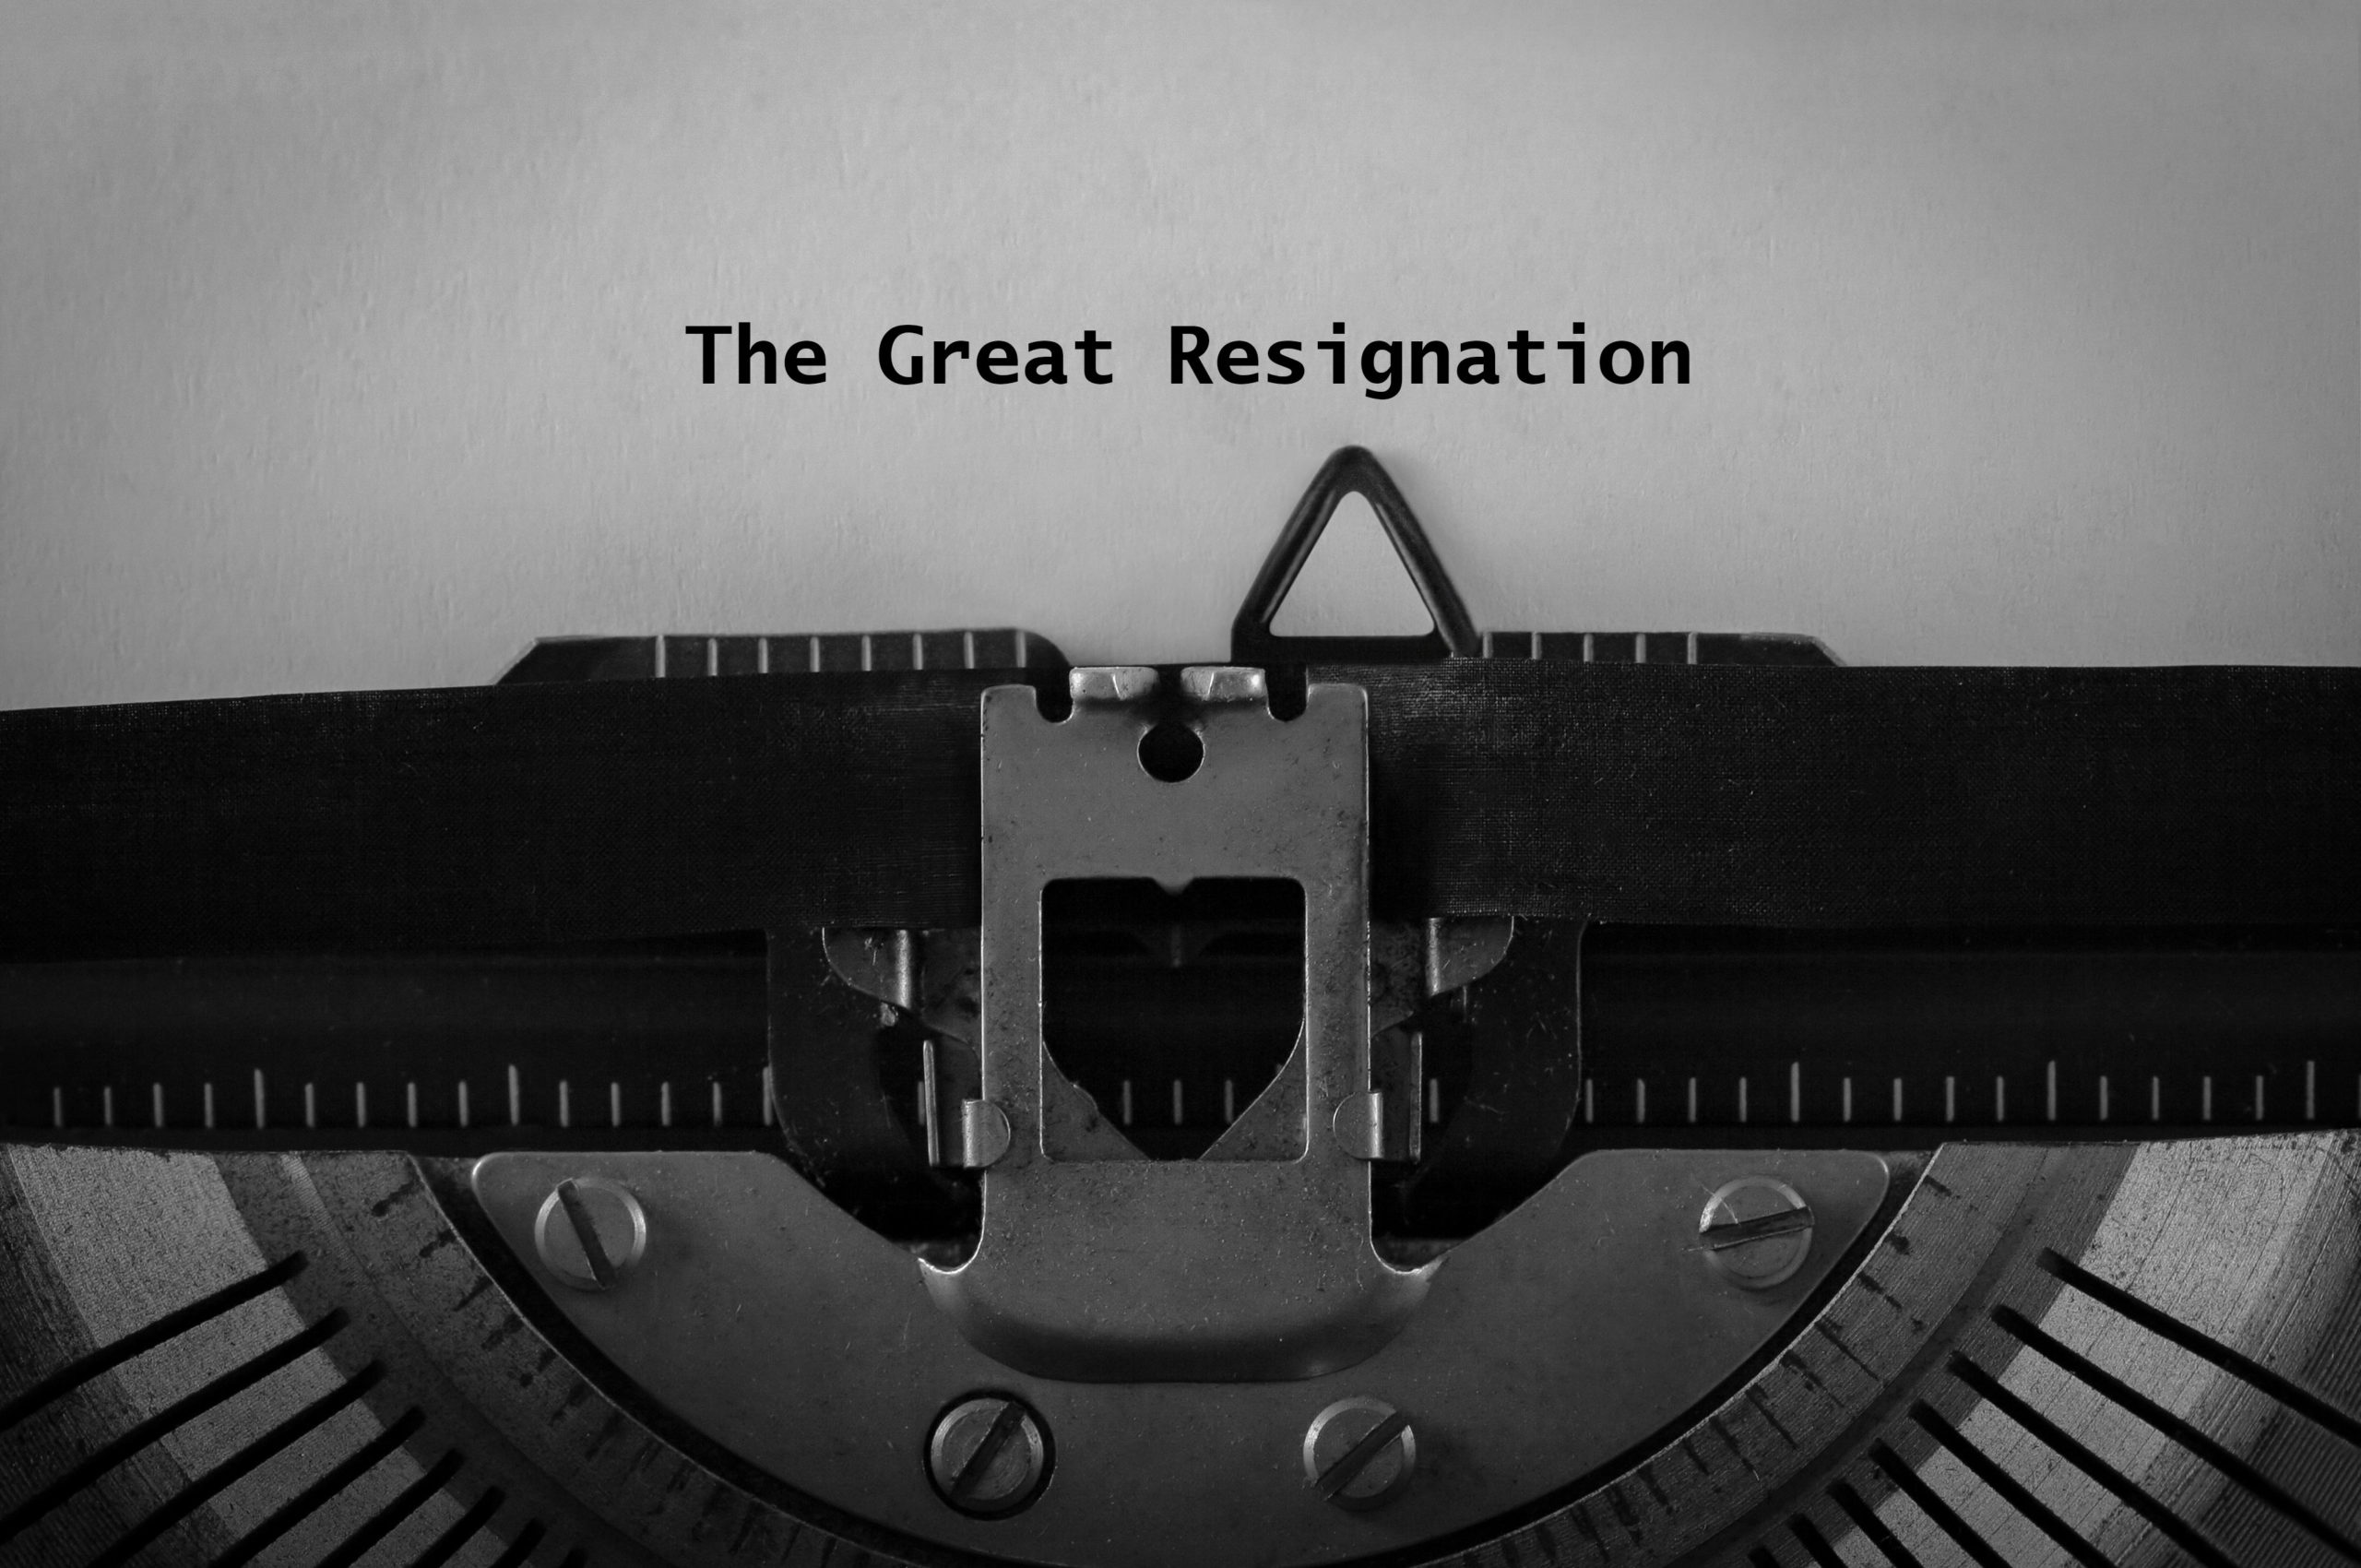 """The words """"The Great Resignation"""" are written by a typewriter"""